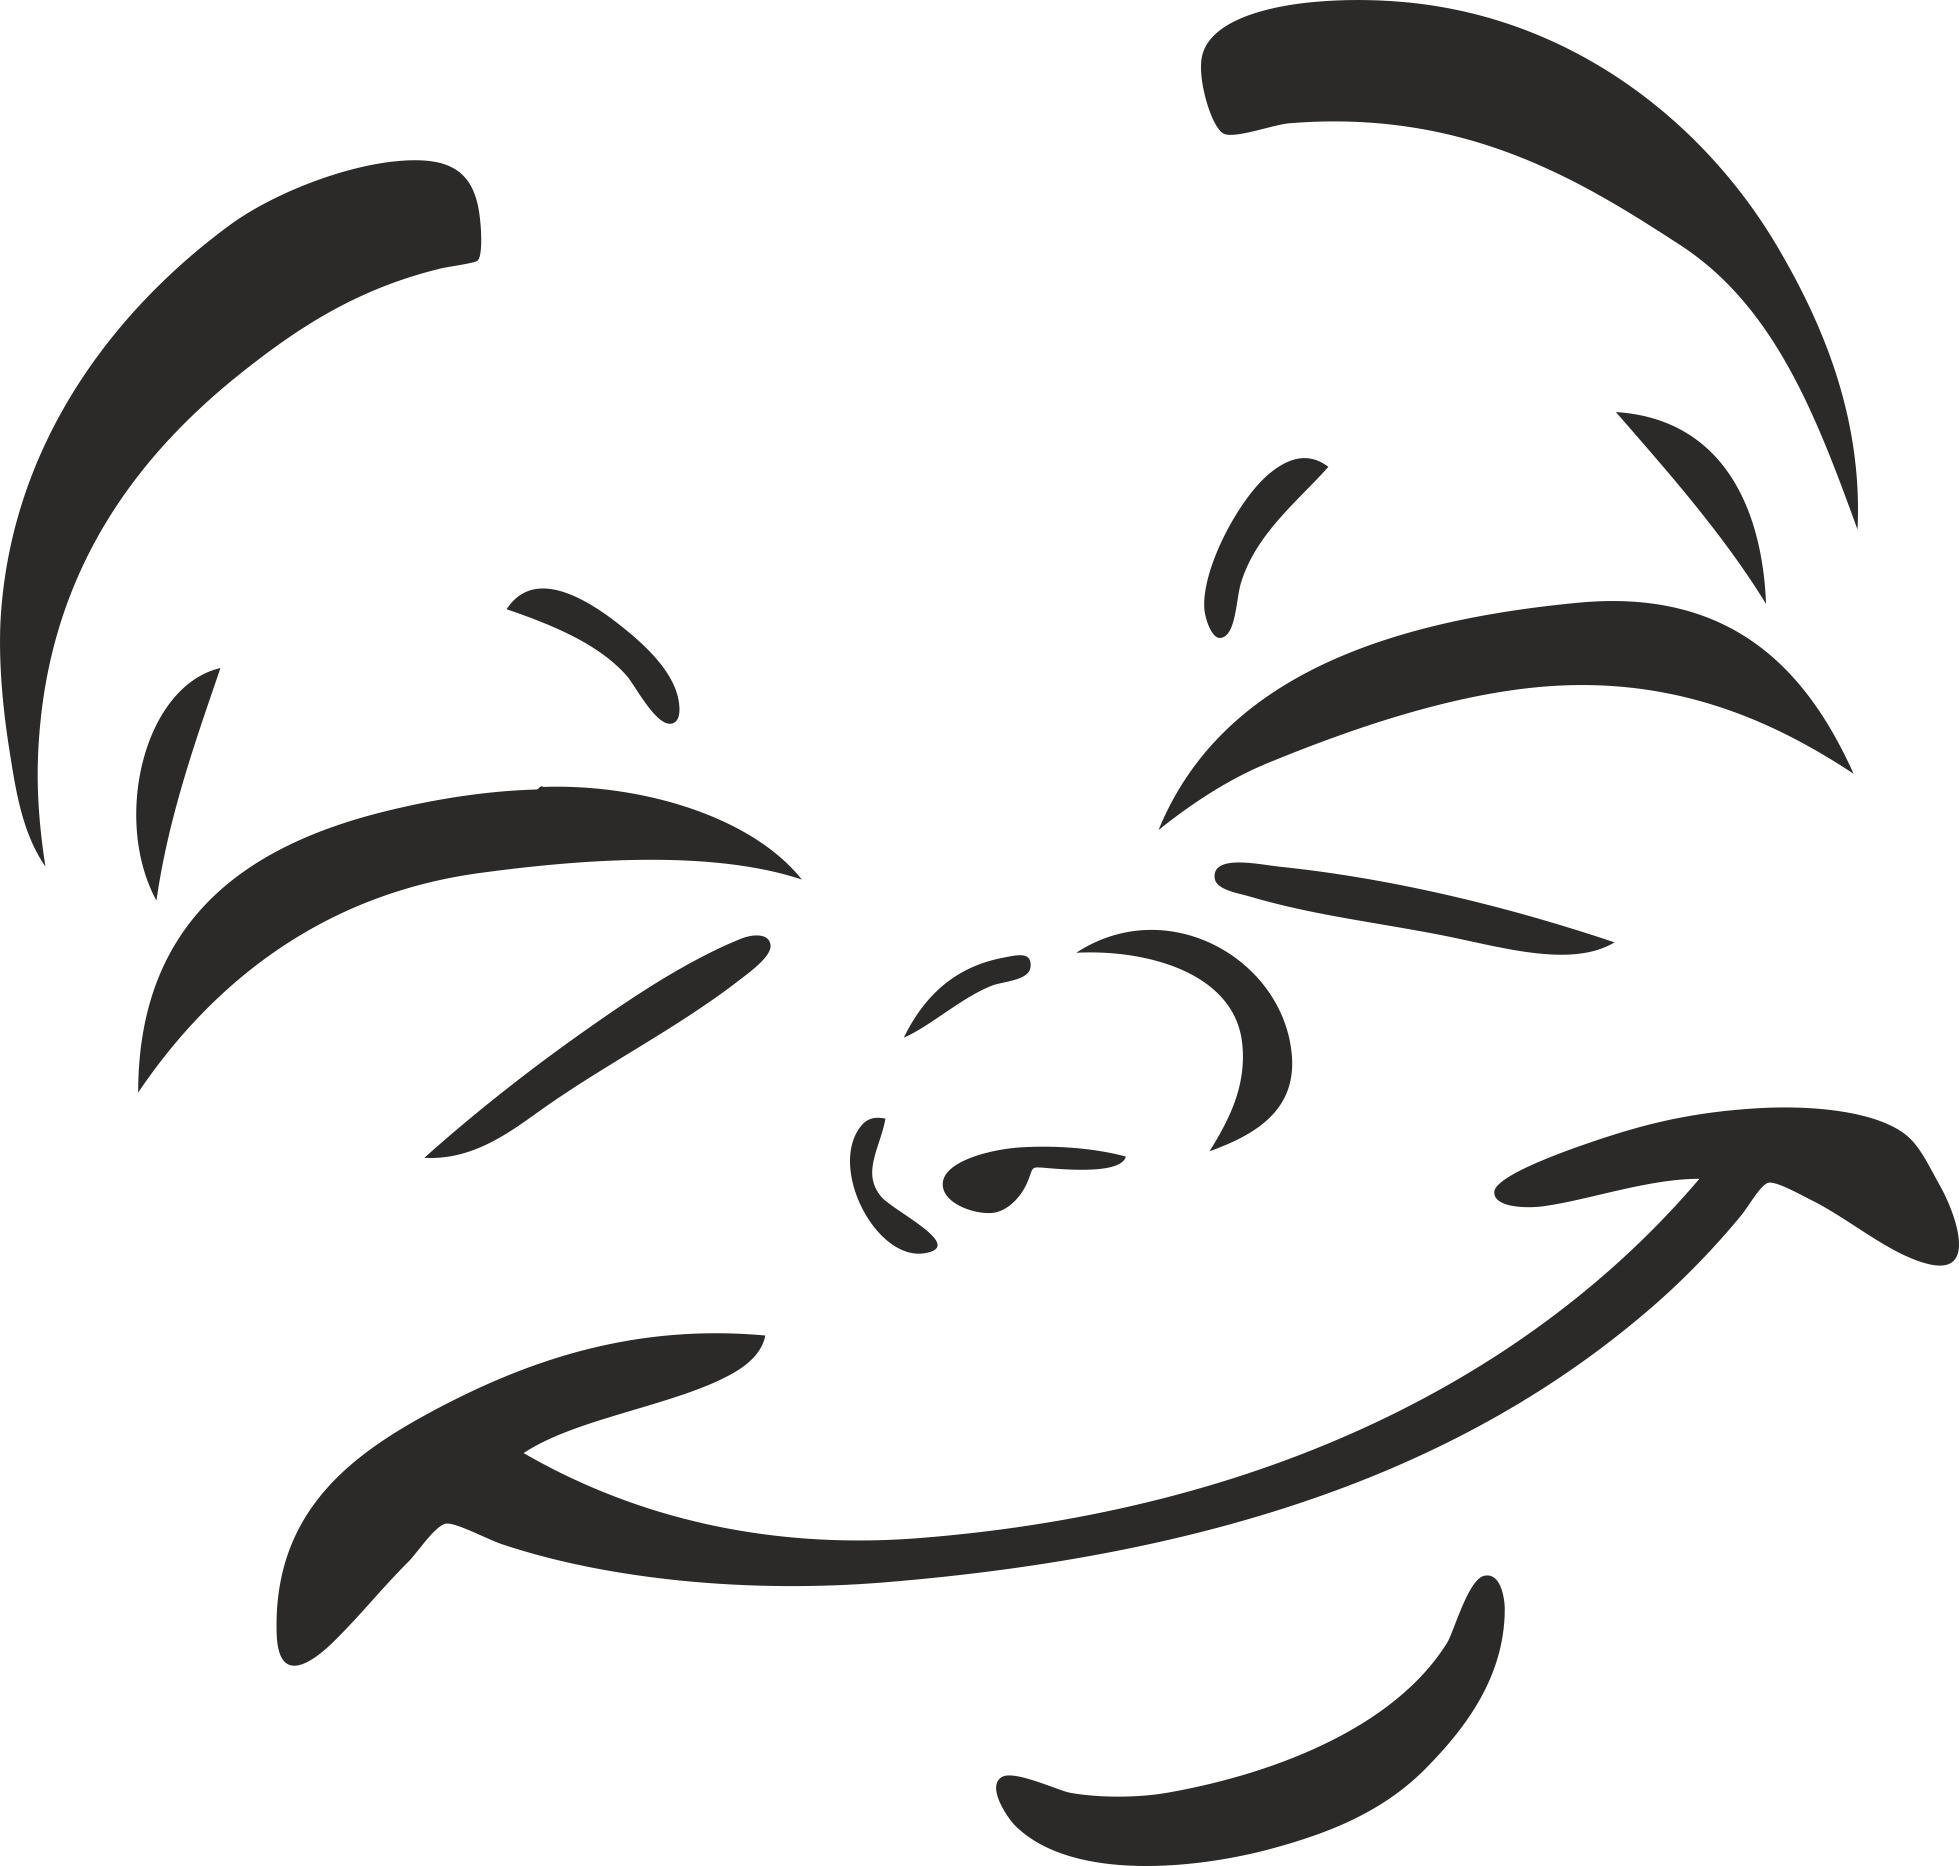 Smiley Collection Vector For Plotter Cutting 08 Free DXF File